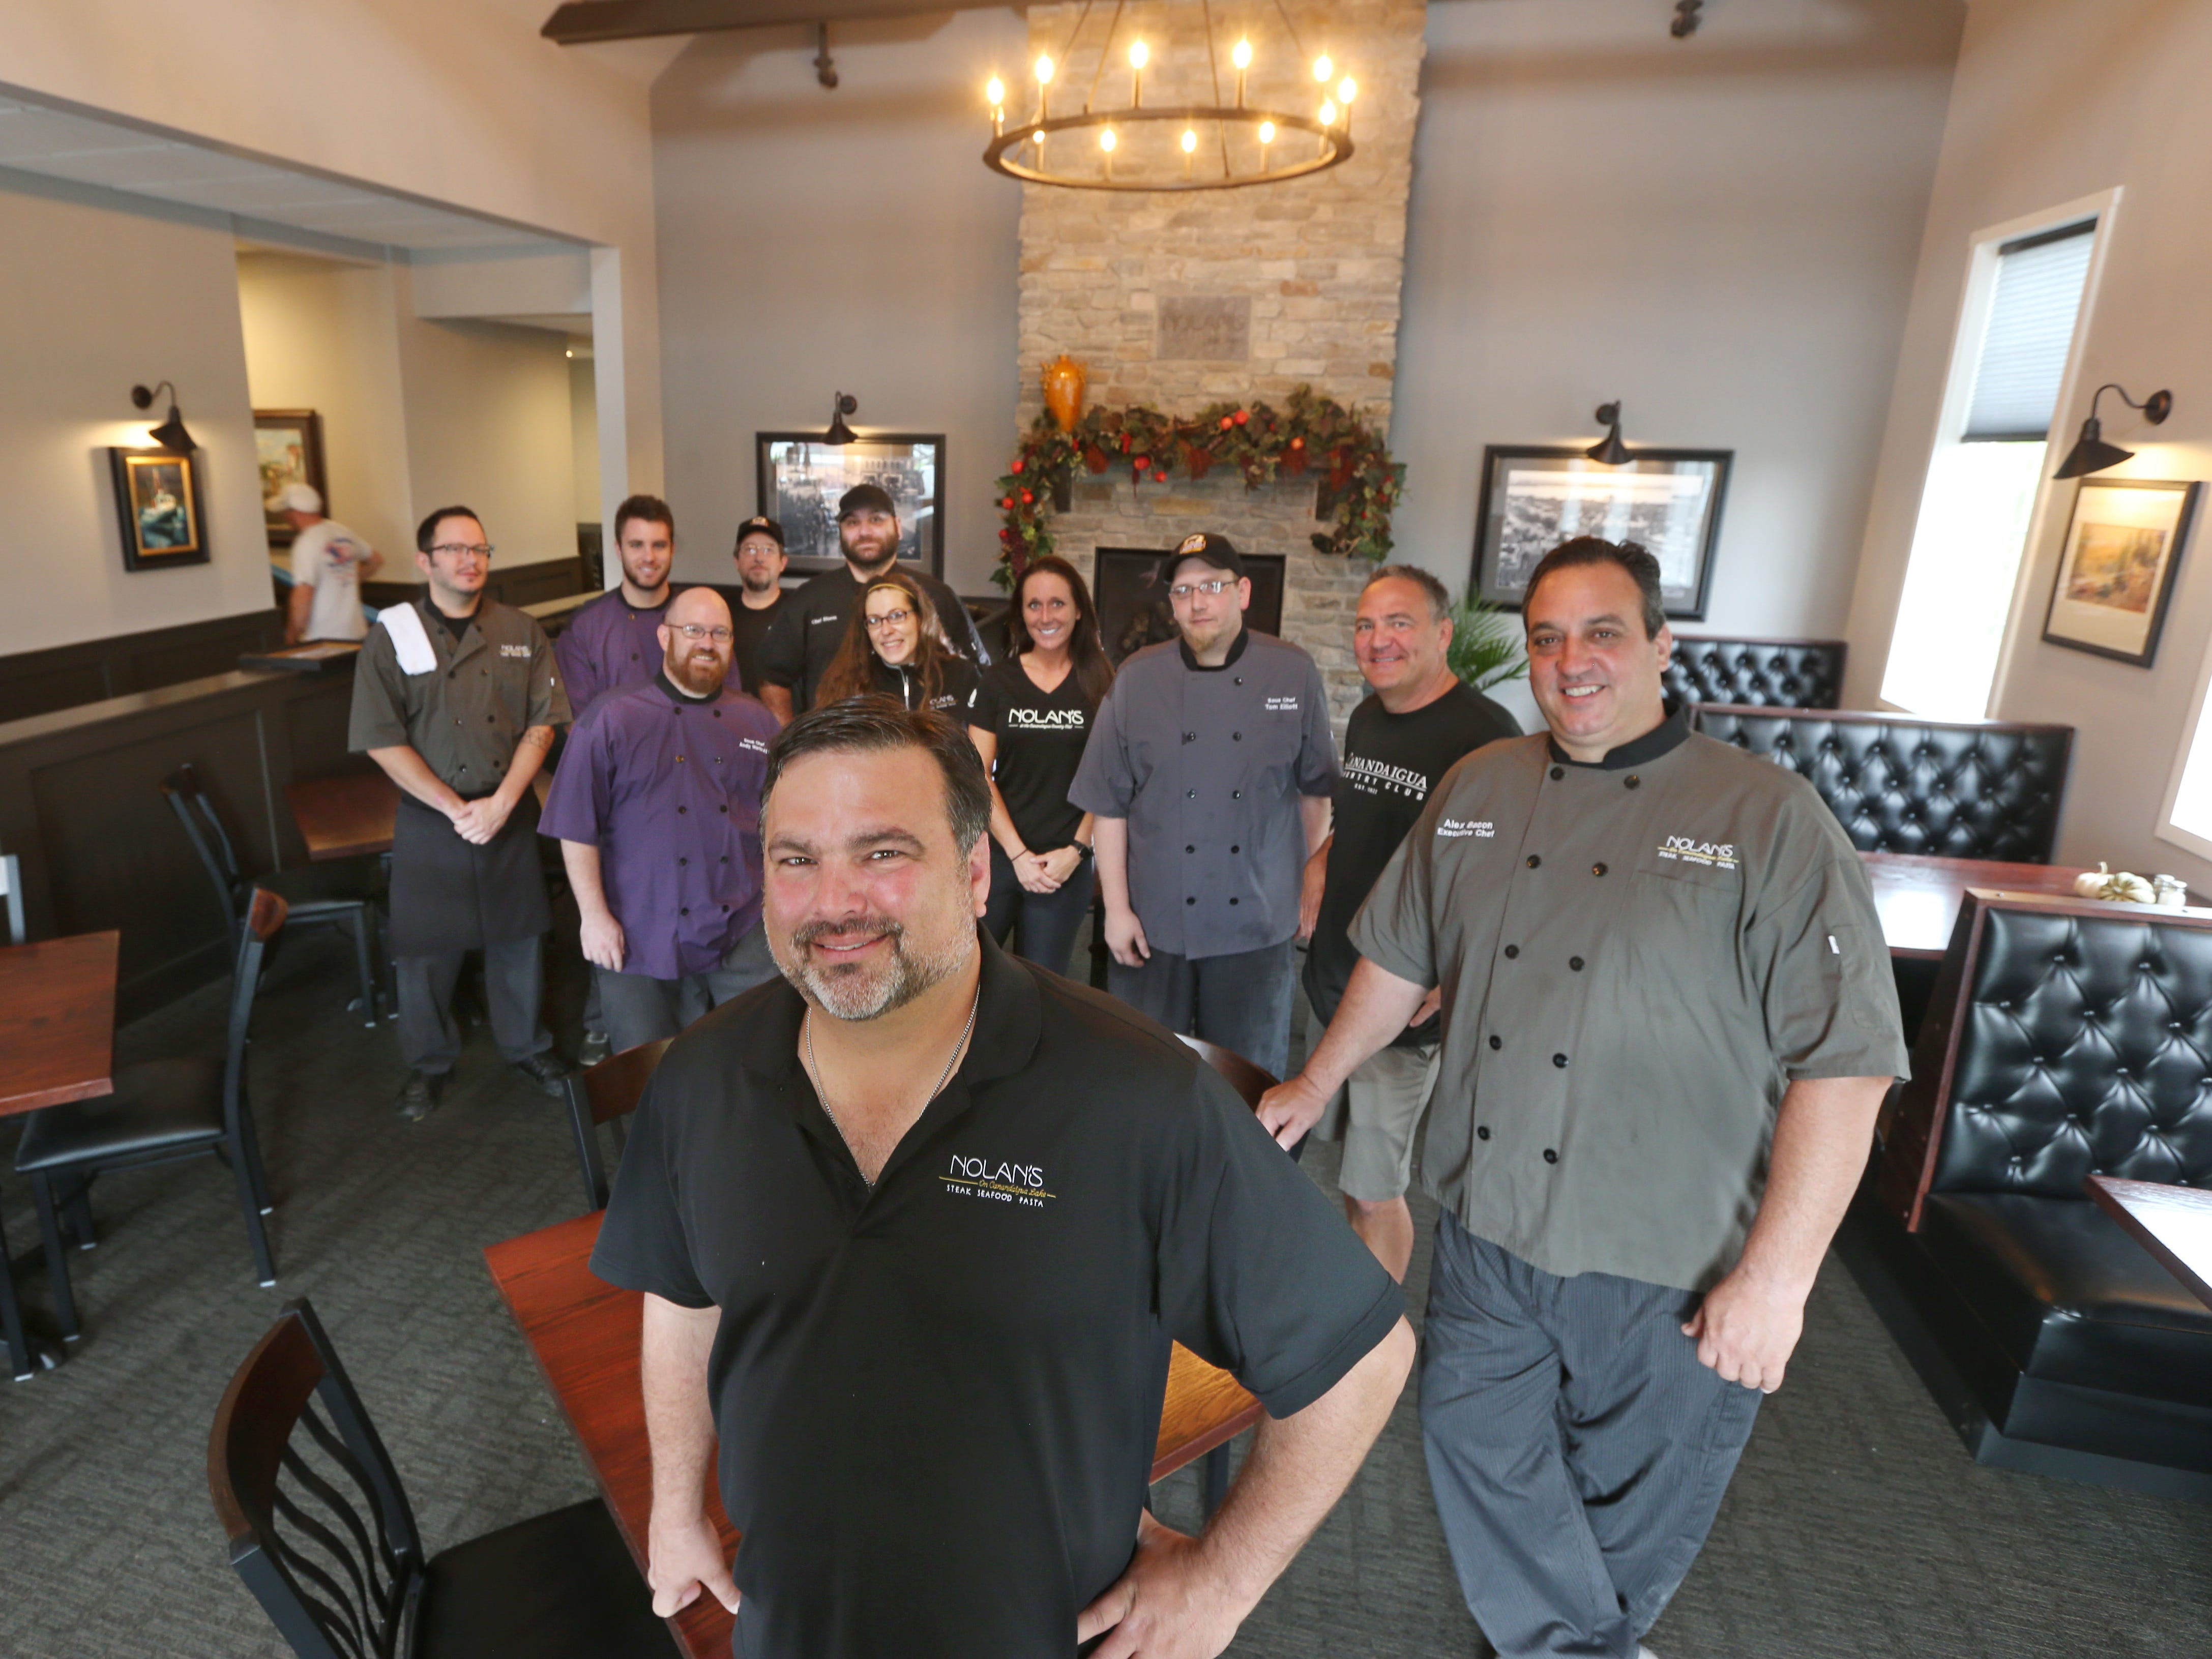 Nick Violas, front center, owner of Nolan's, is surrounded by his restaurant staff, including executive chef Alex Bacon, far right, at Nolan's in Canandaigua Thursday, Oct. 11, 2018.  The popular restaurant, which burned down July 13, 2017, is set to reopen.